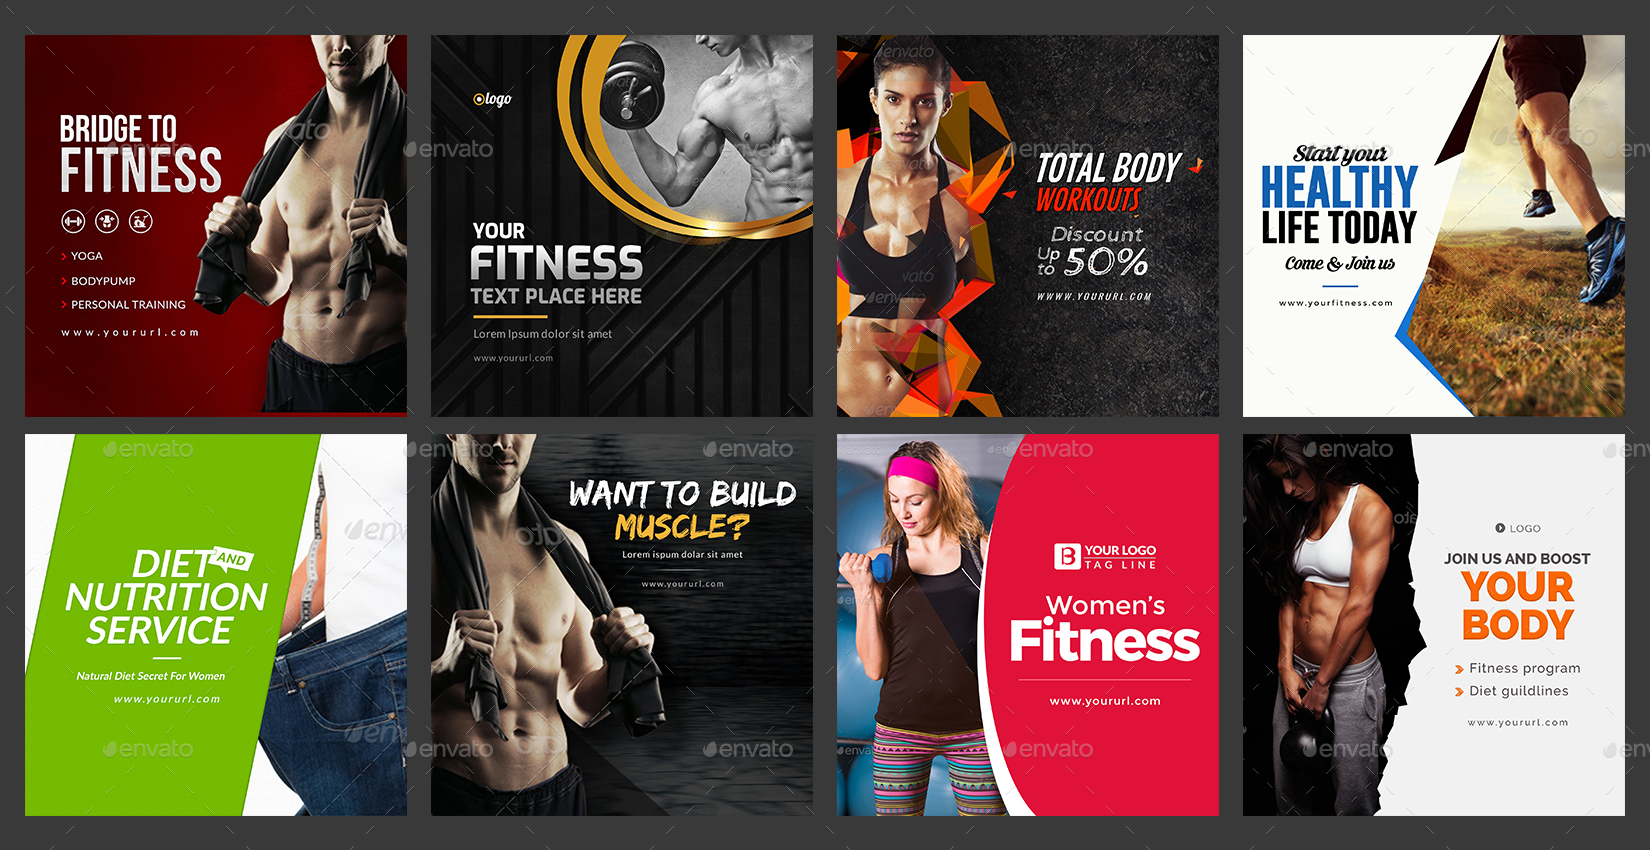 01_Preview02 Advertising Business Letters Template on